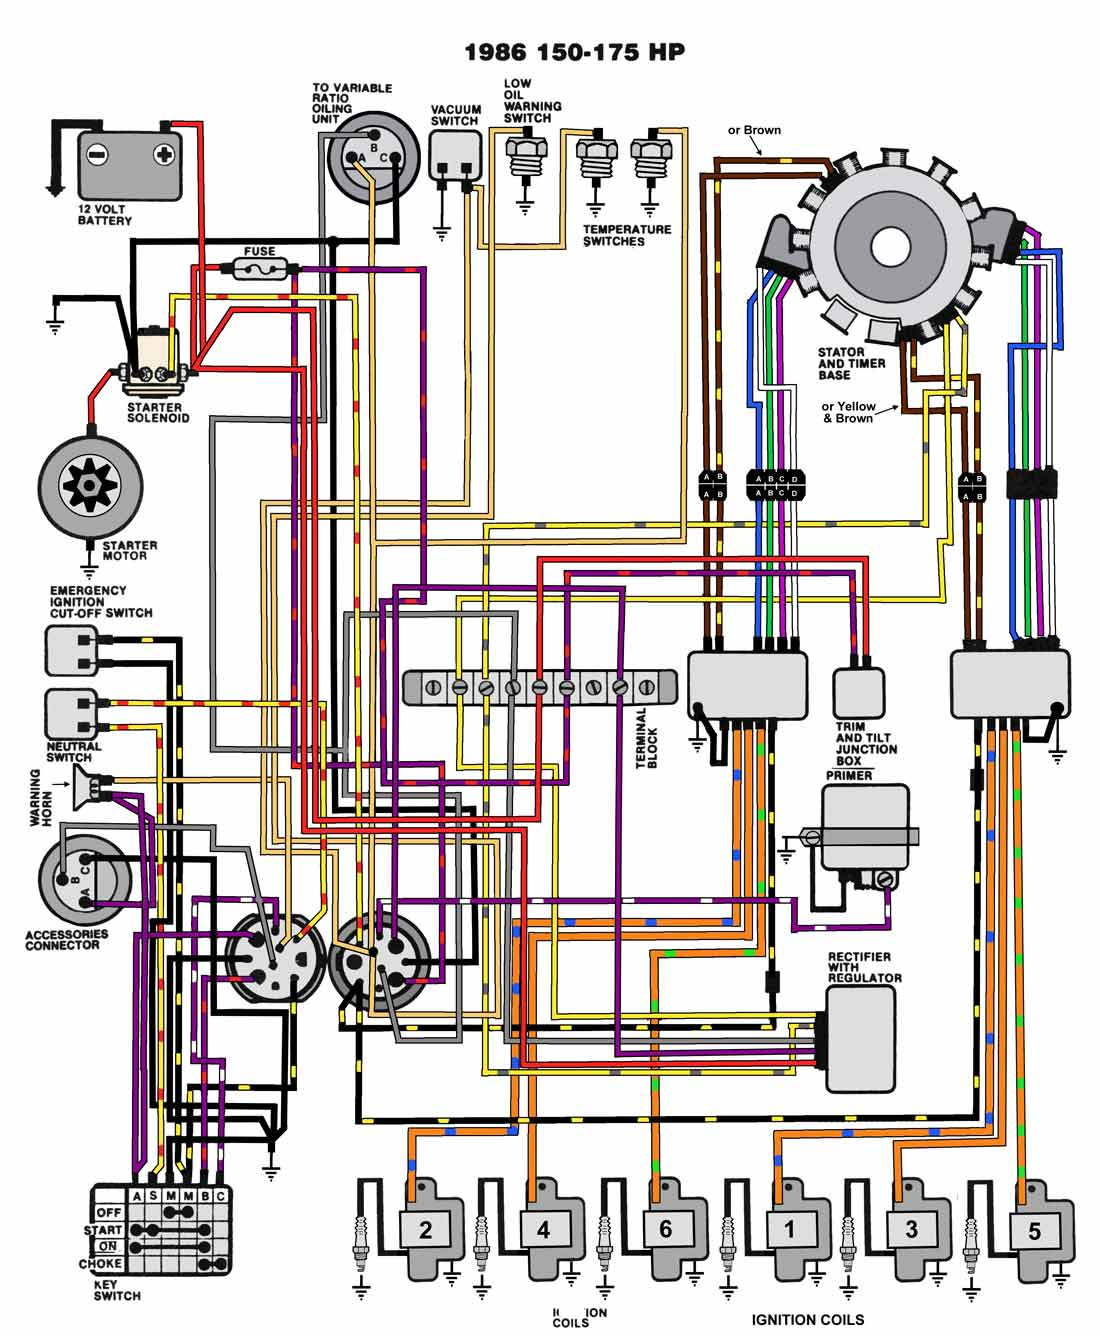 Wiring Diagram Besides Mercury Outboard Ignition Switch Wiring ... on yamaha outboard wire diagram, 96 evinrude wiring diagram, mercury vapor light wiring diagram, mariner outboard wiring diagram, tohatsu outboard wiring diagram, mercury optimax wiring diagram, mercury 500 wiring diagram, mercury efi wiring diagram, marine power wiring diagram, mercury key switch diagram, nissan outboard wiring diagram, 1965 mercury 650 wiring diagram, mercury 850 wiring diagram, mercury 9.9 wiring diagram, sea ray wiring diagram, mercury milan wiring diagram, mercury 150 wiring diagram, mercury control wiring diagram, mercury 50 hp wiring diagram, mercruiser trim system wiring diagram,